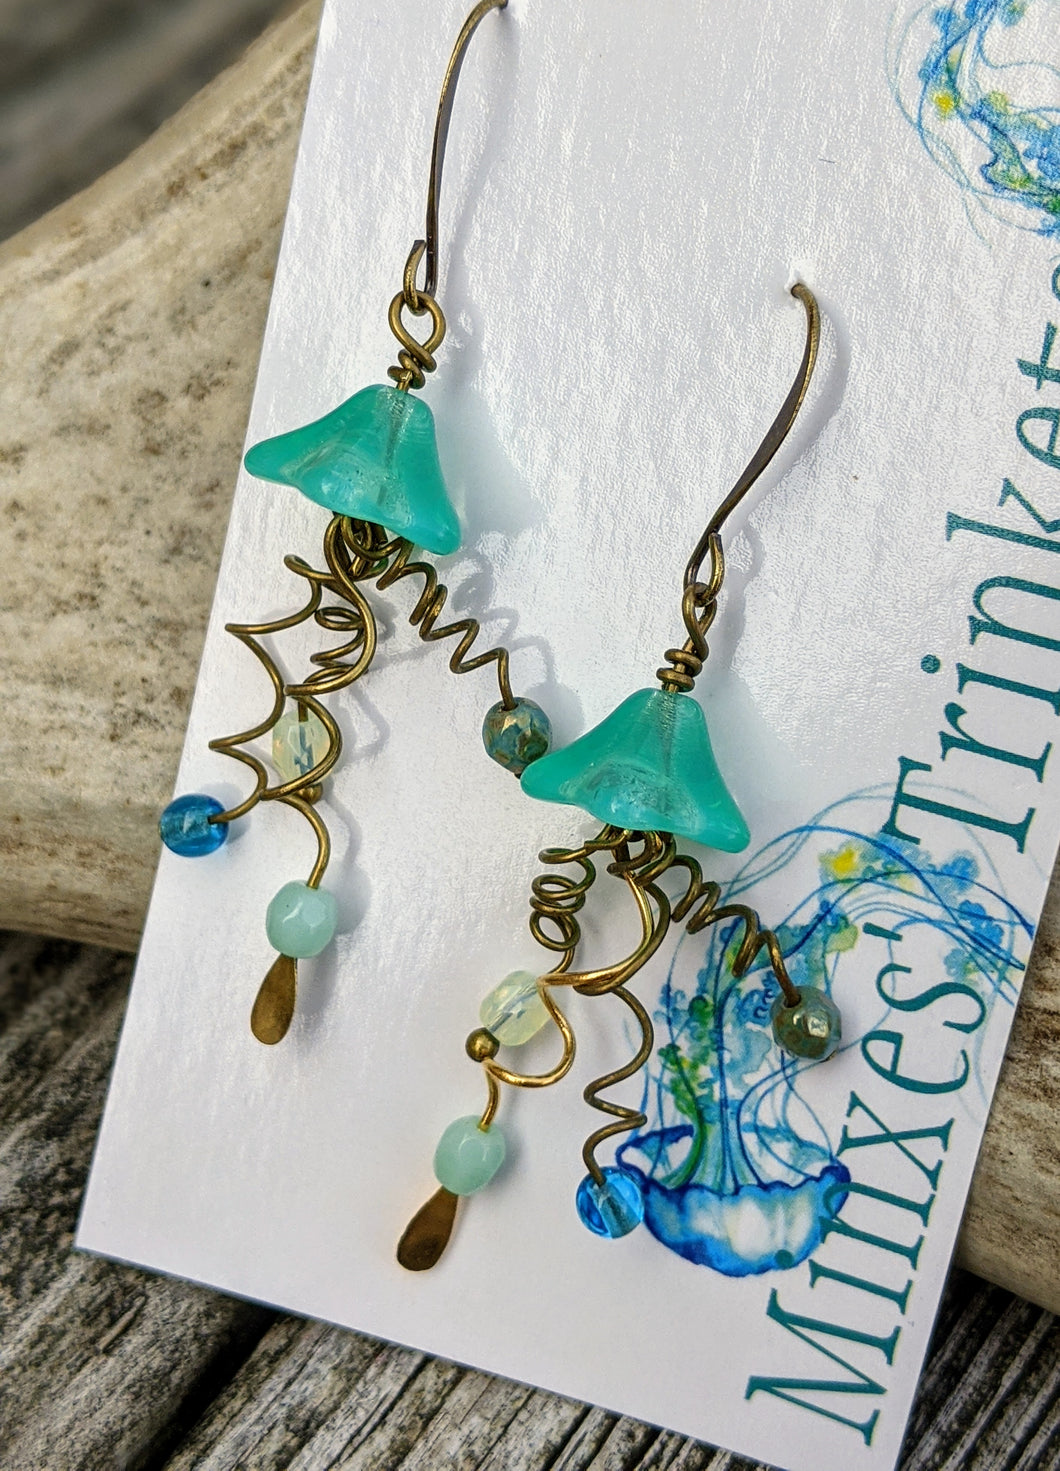 Jellyfish Earrings - Aqua - Minxes' Trinkets